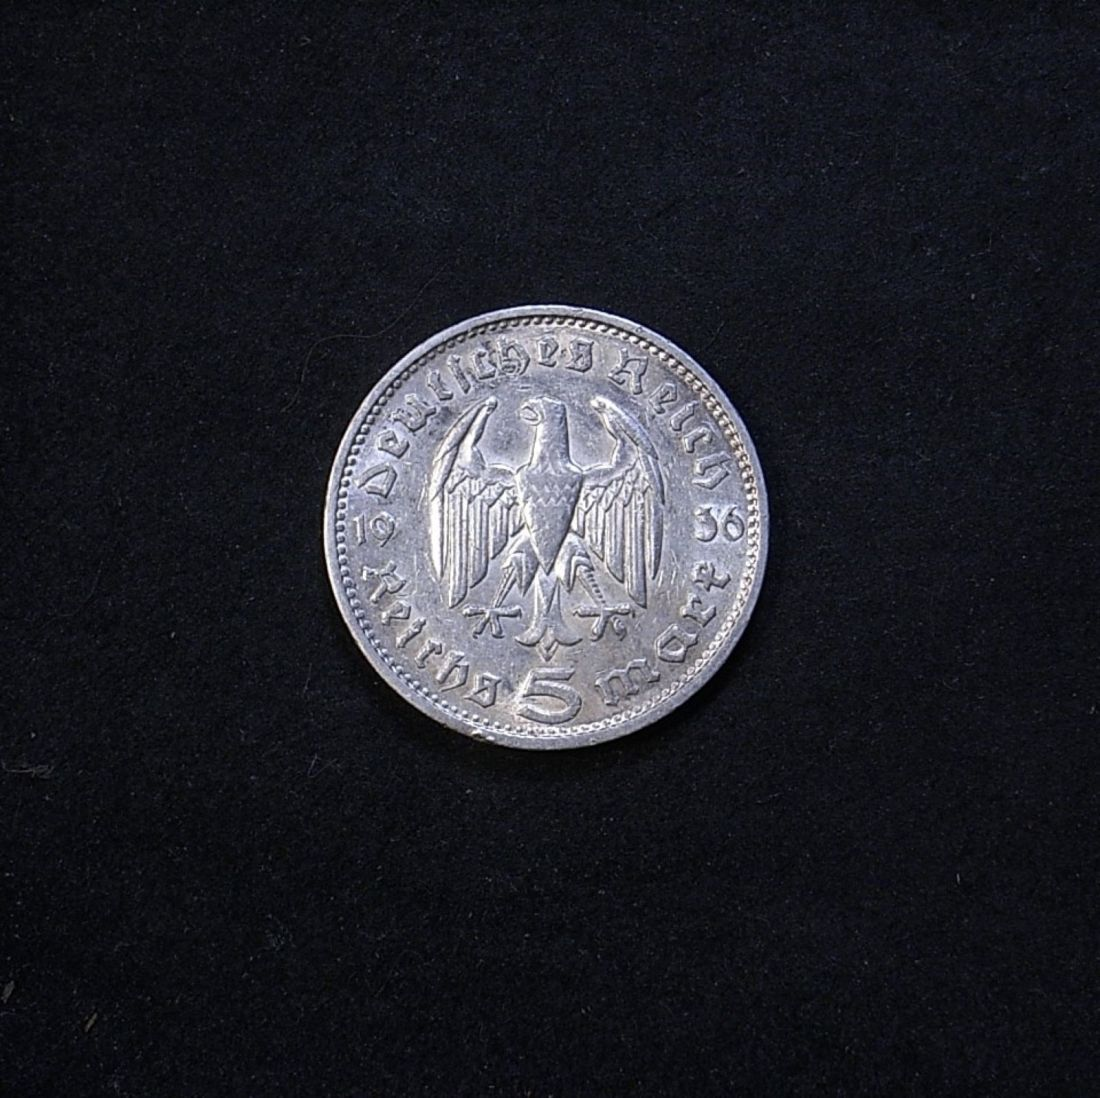 Germany 5 marks 1936G reverse showing overall appearance